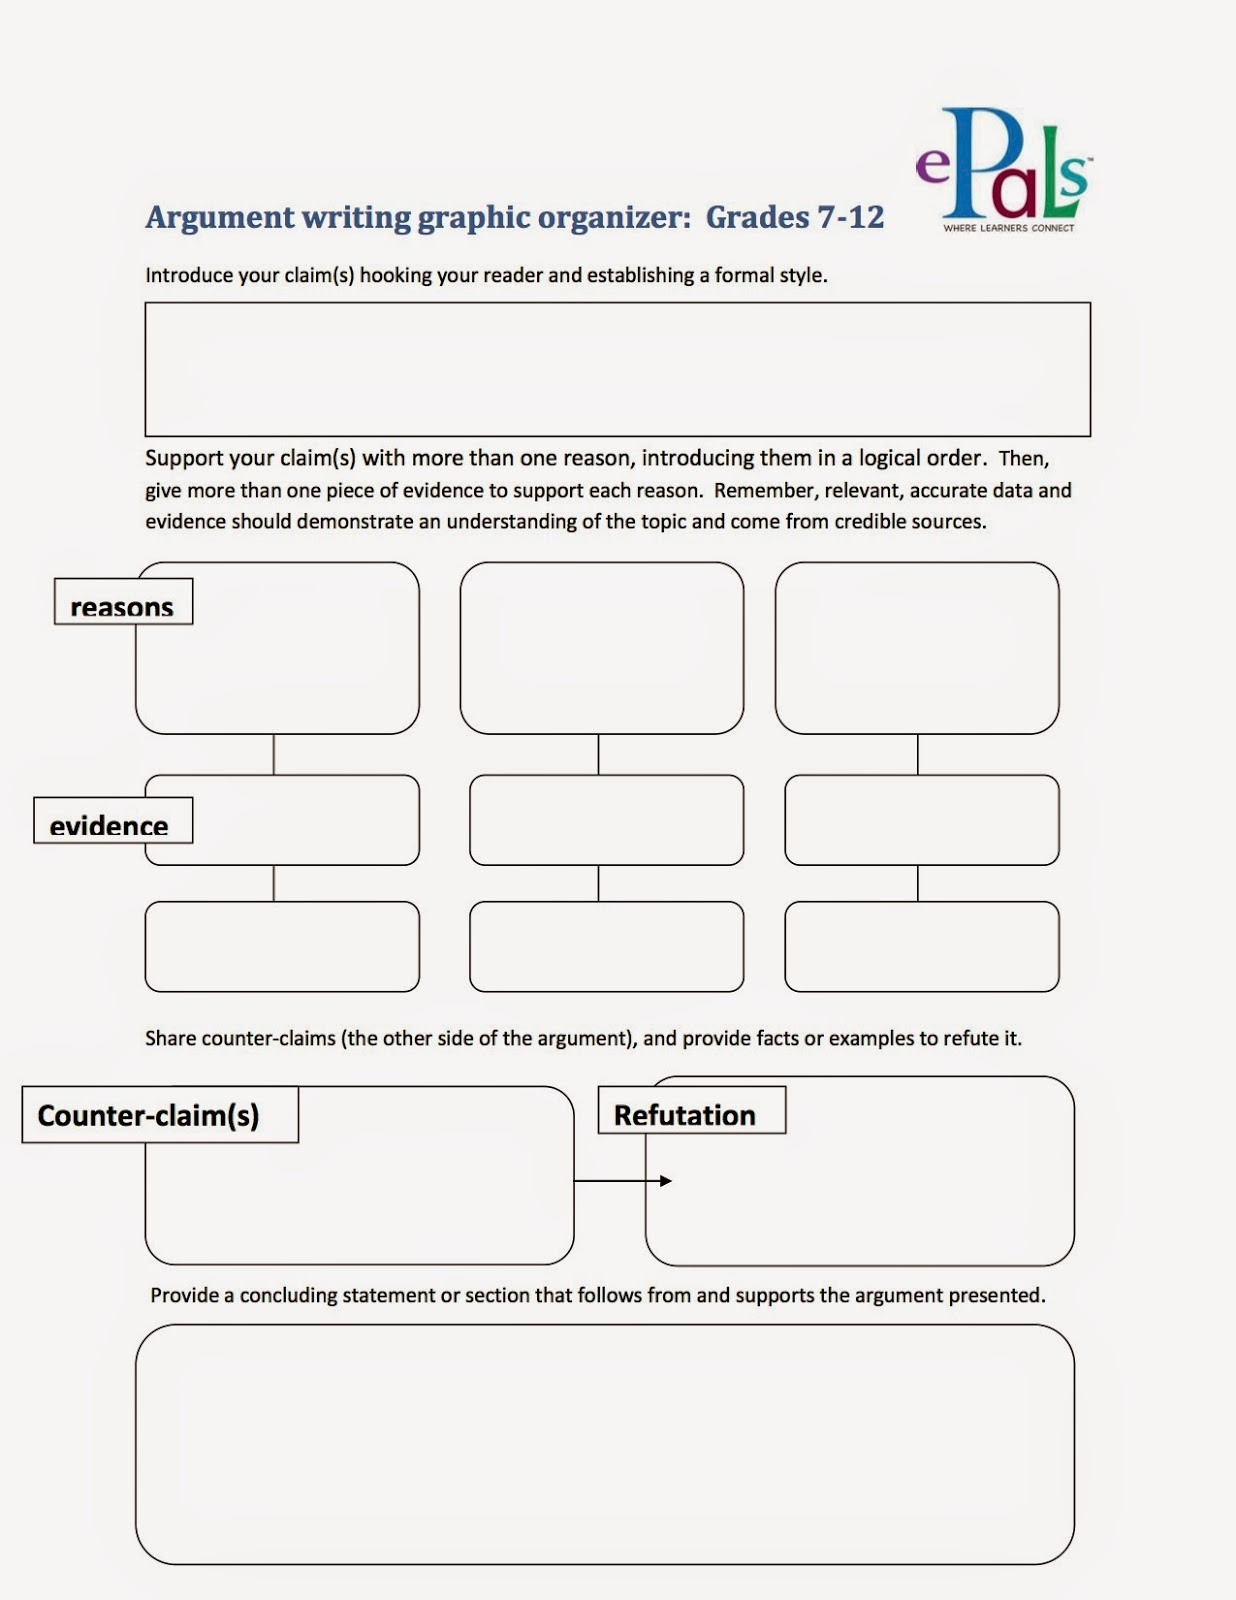 essay graphic organizer doc Personal narrative essay – graphic organizer name: _____ date: _____ tell me what you're going to tell me: tell me what happened/how it happened: tell me what you.